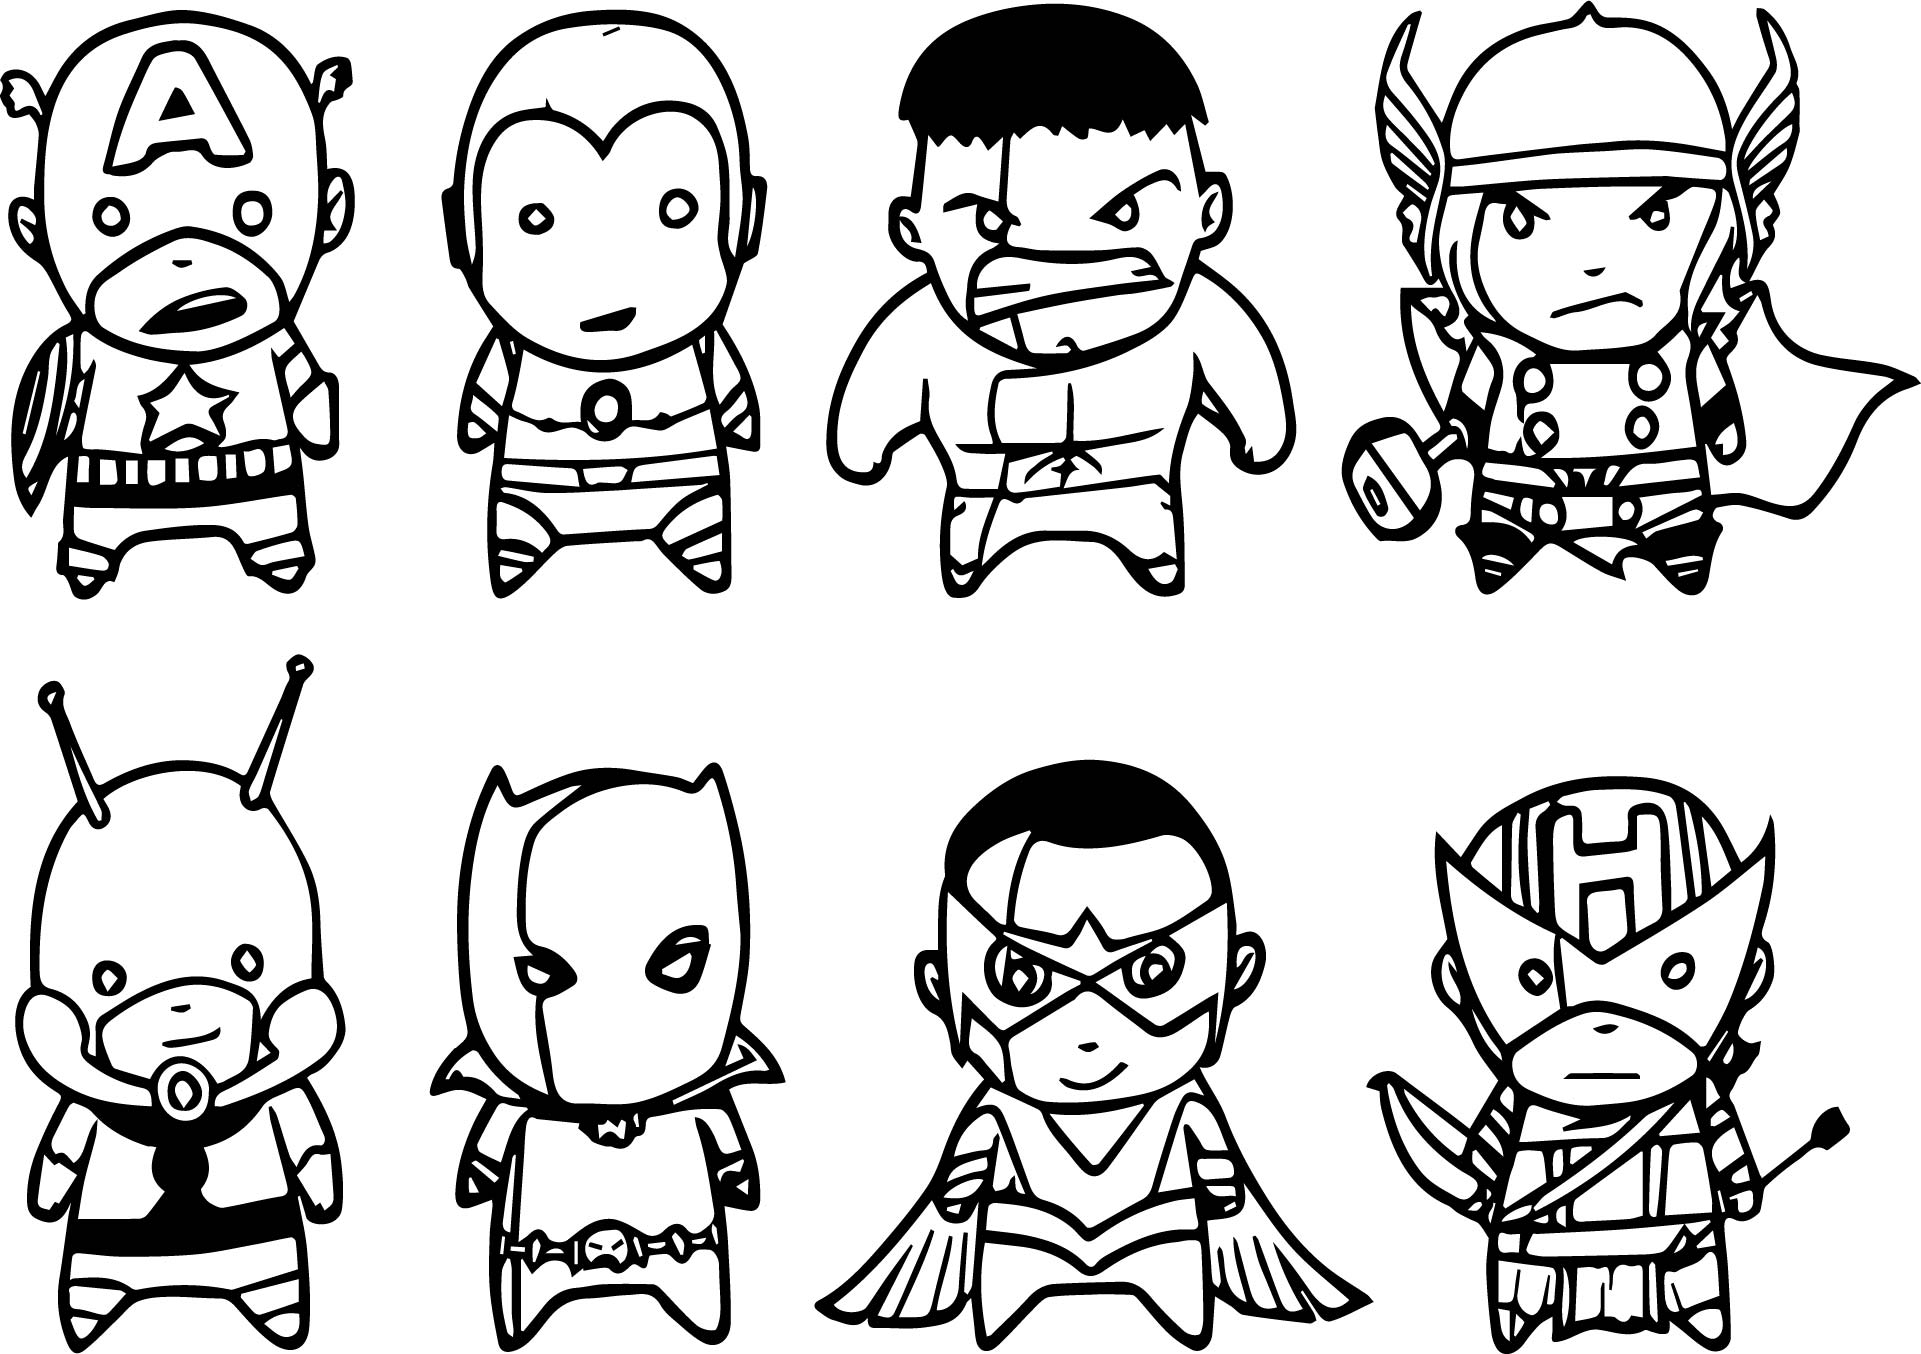 marvel avengers coloring pages cute avengers coloring pages png download marvel marvel coloring avengers pages